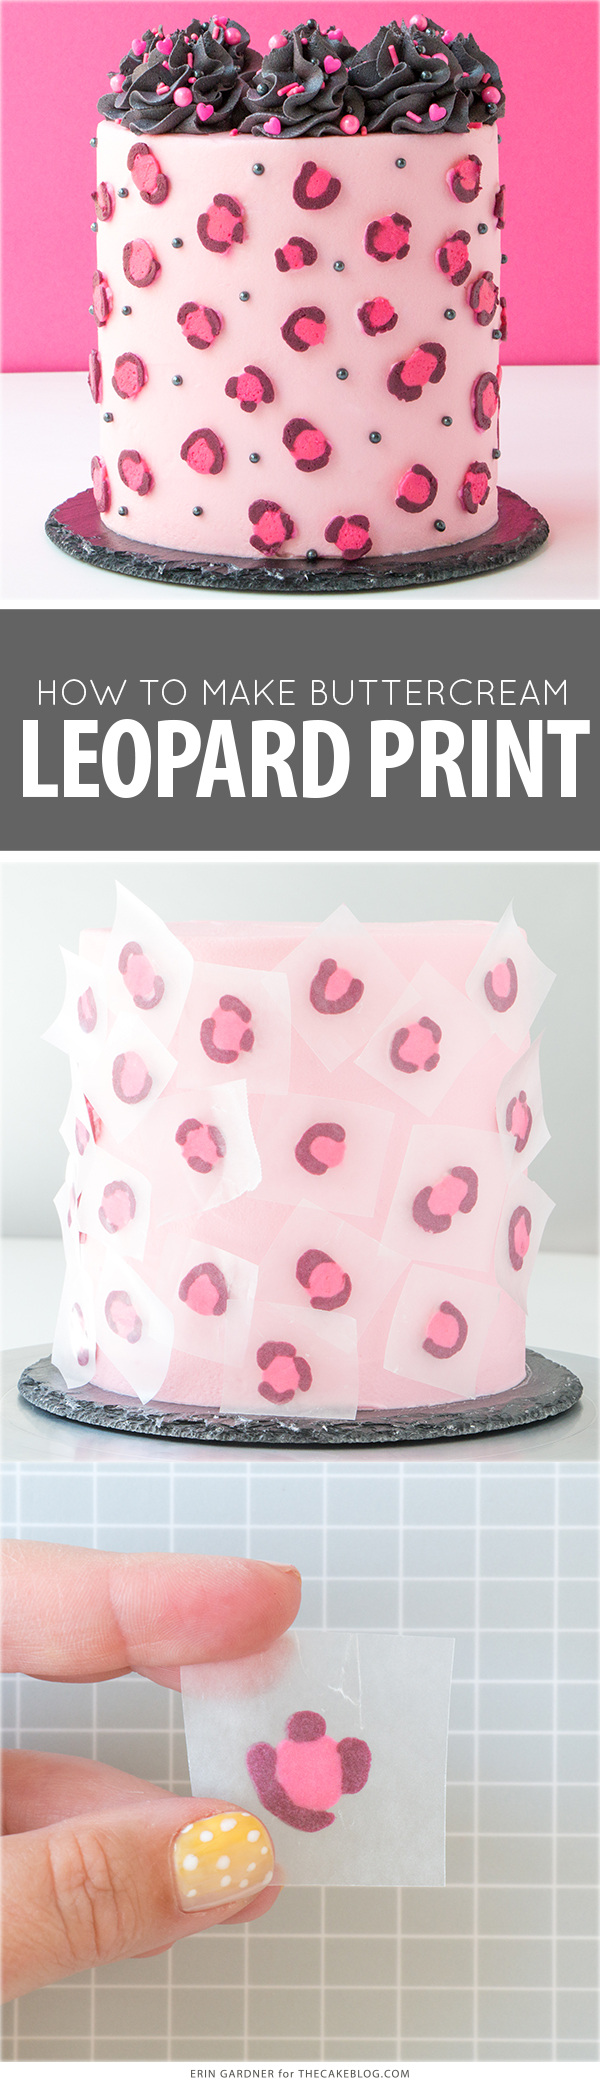 Leopard Print Buttercream Cake - how to make a pink leopard print cake using buttercream frosting | by Erin Gardner for TheCakeBlog.com